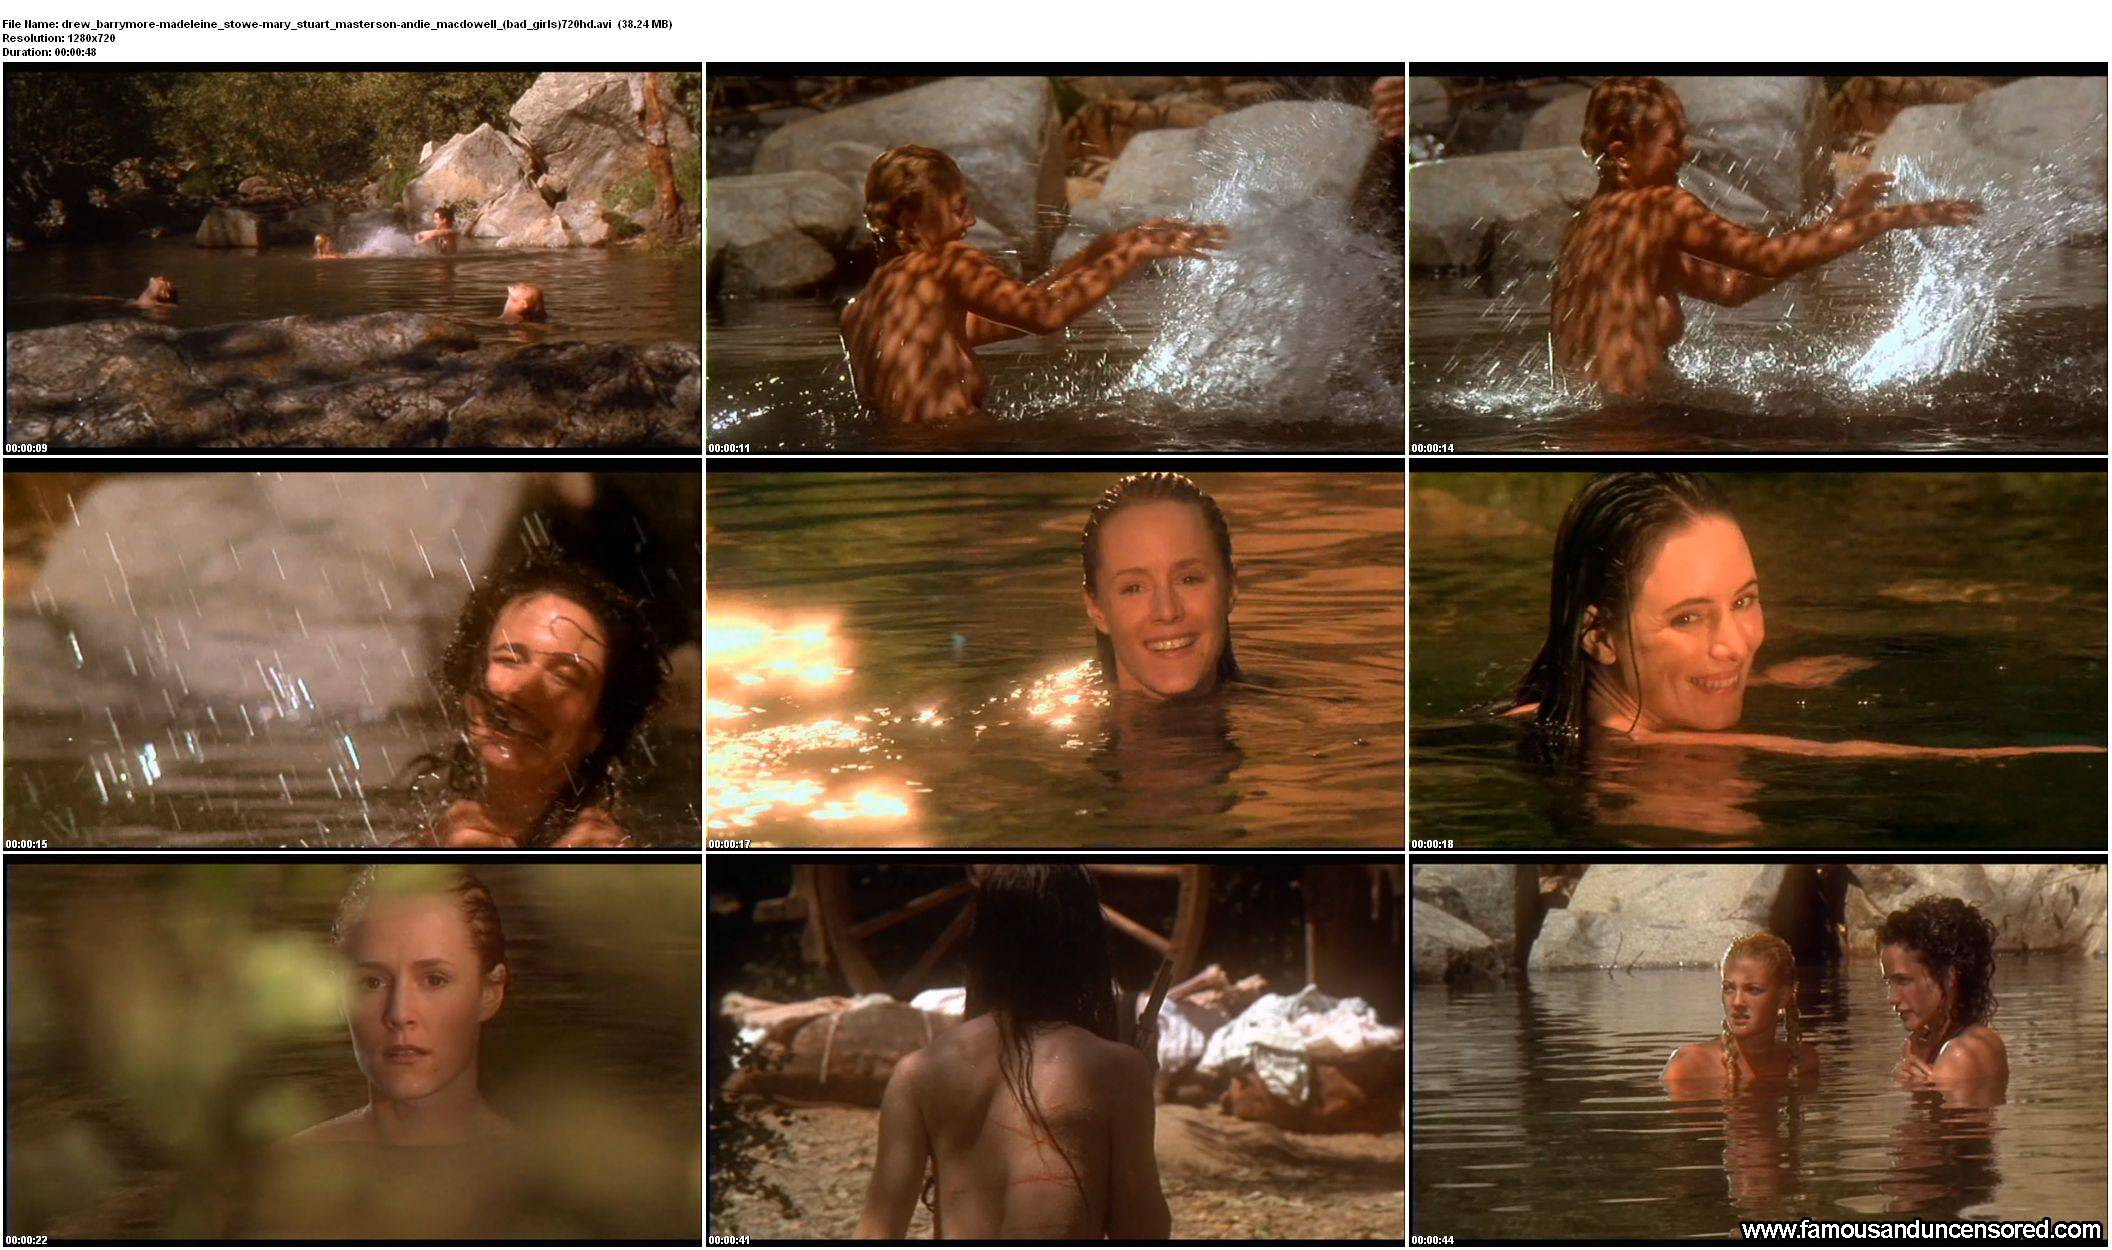 Mary stuart masterson young nude phrase, matchless)))